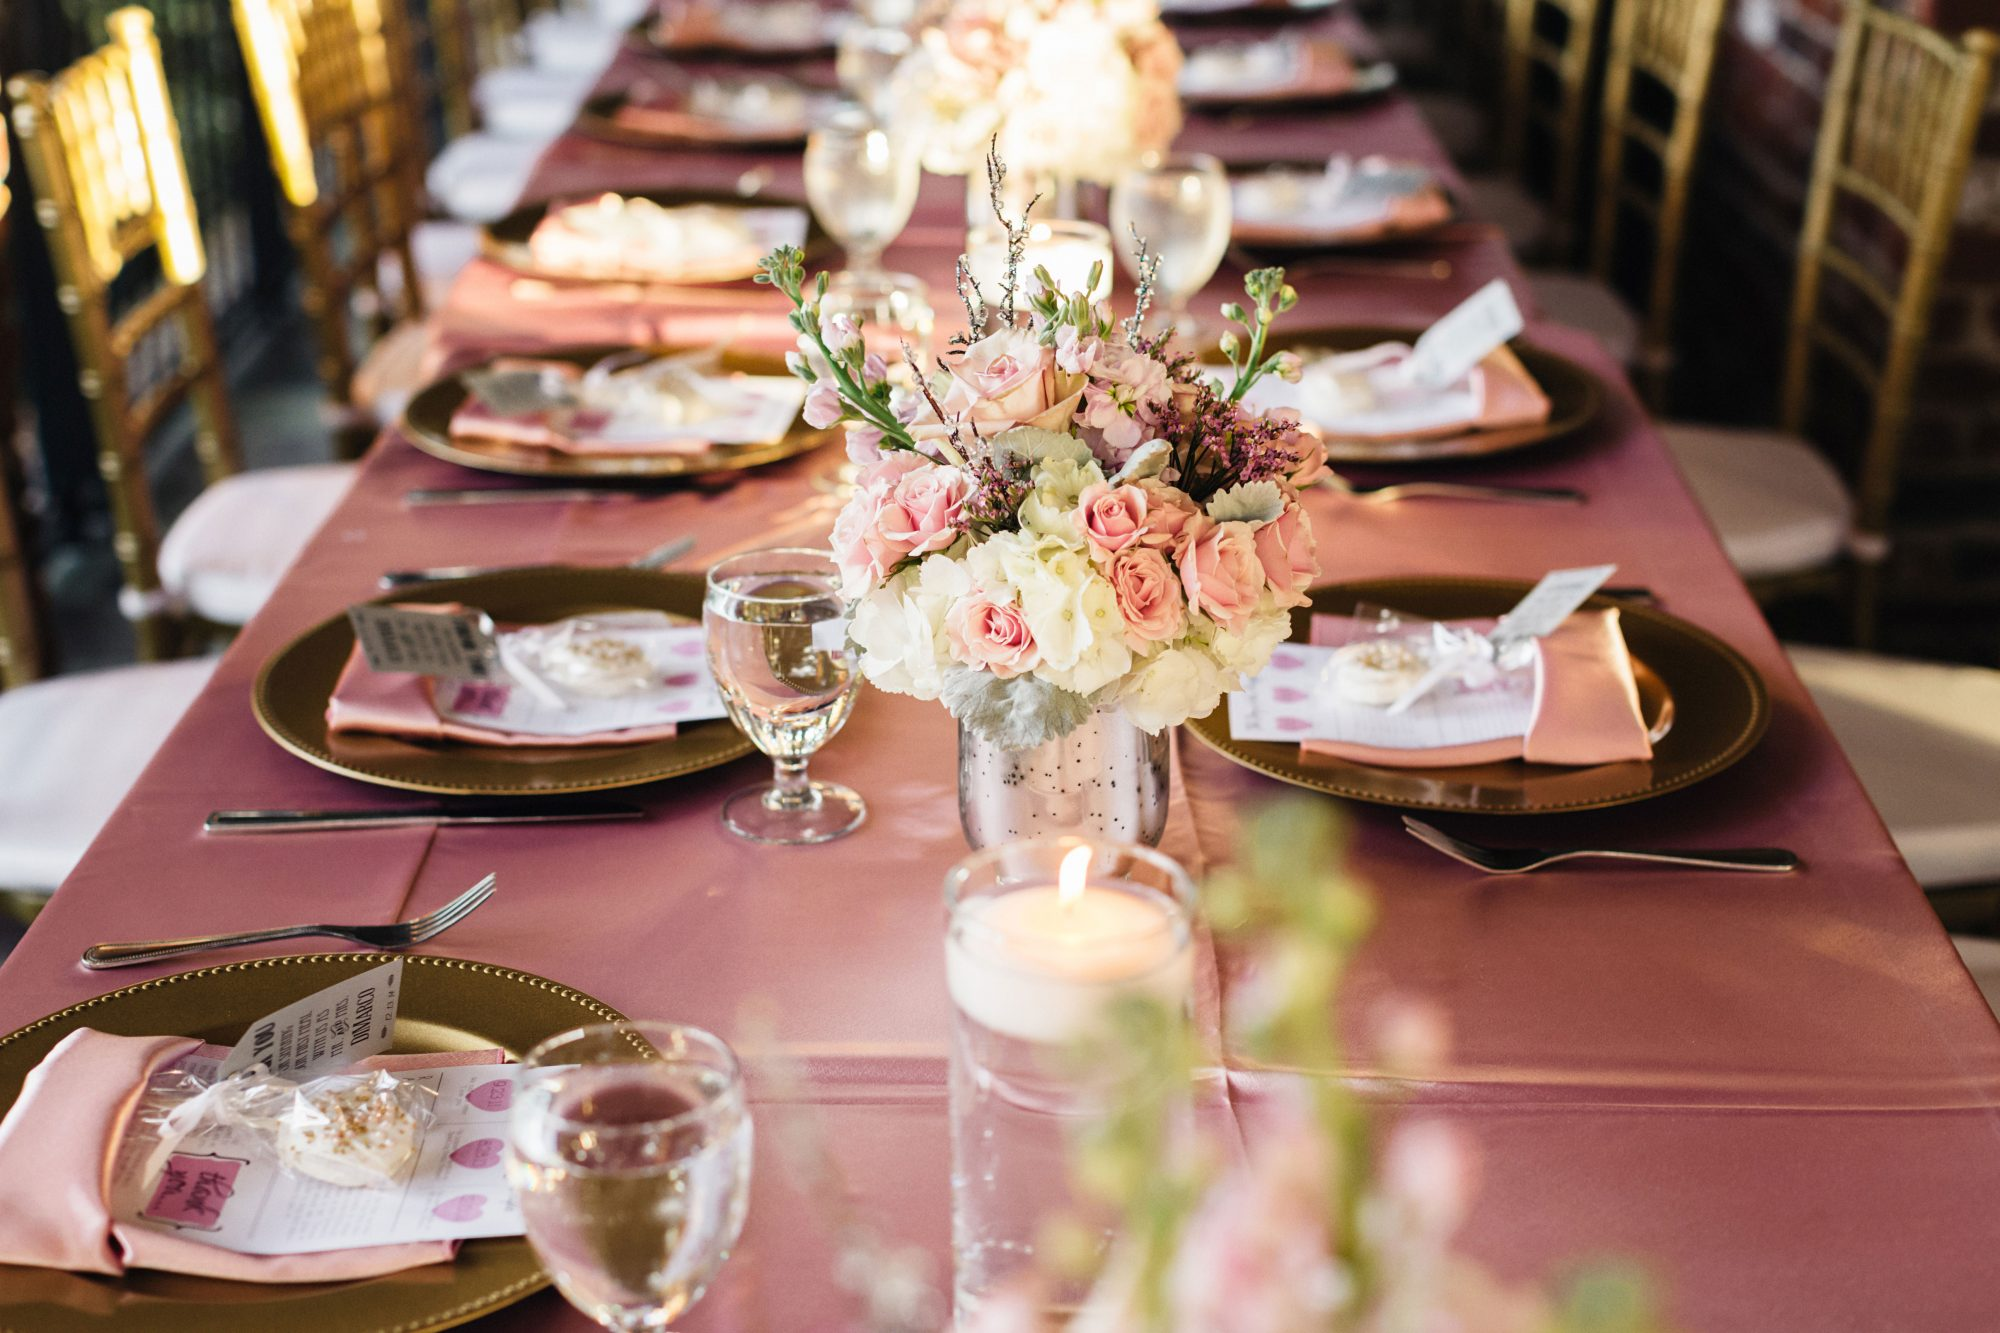 The Tablescape